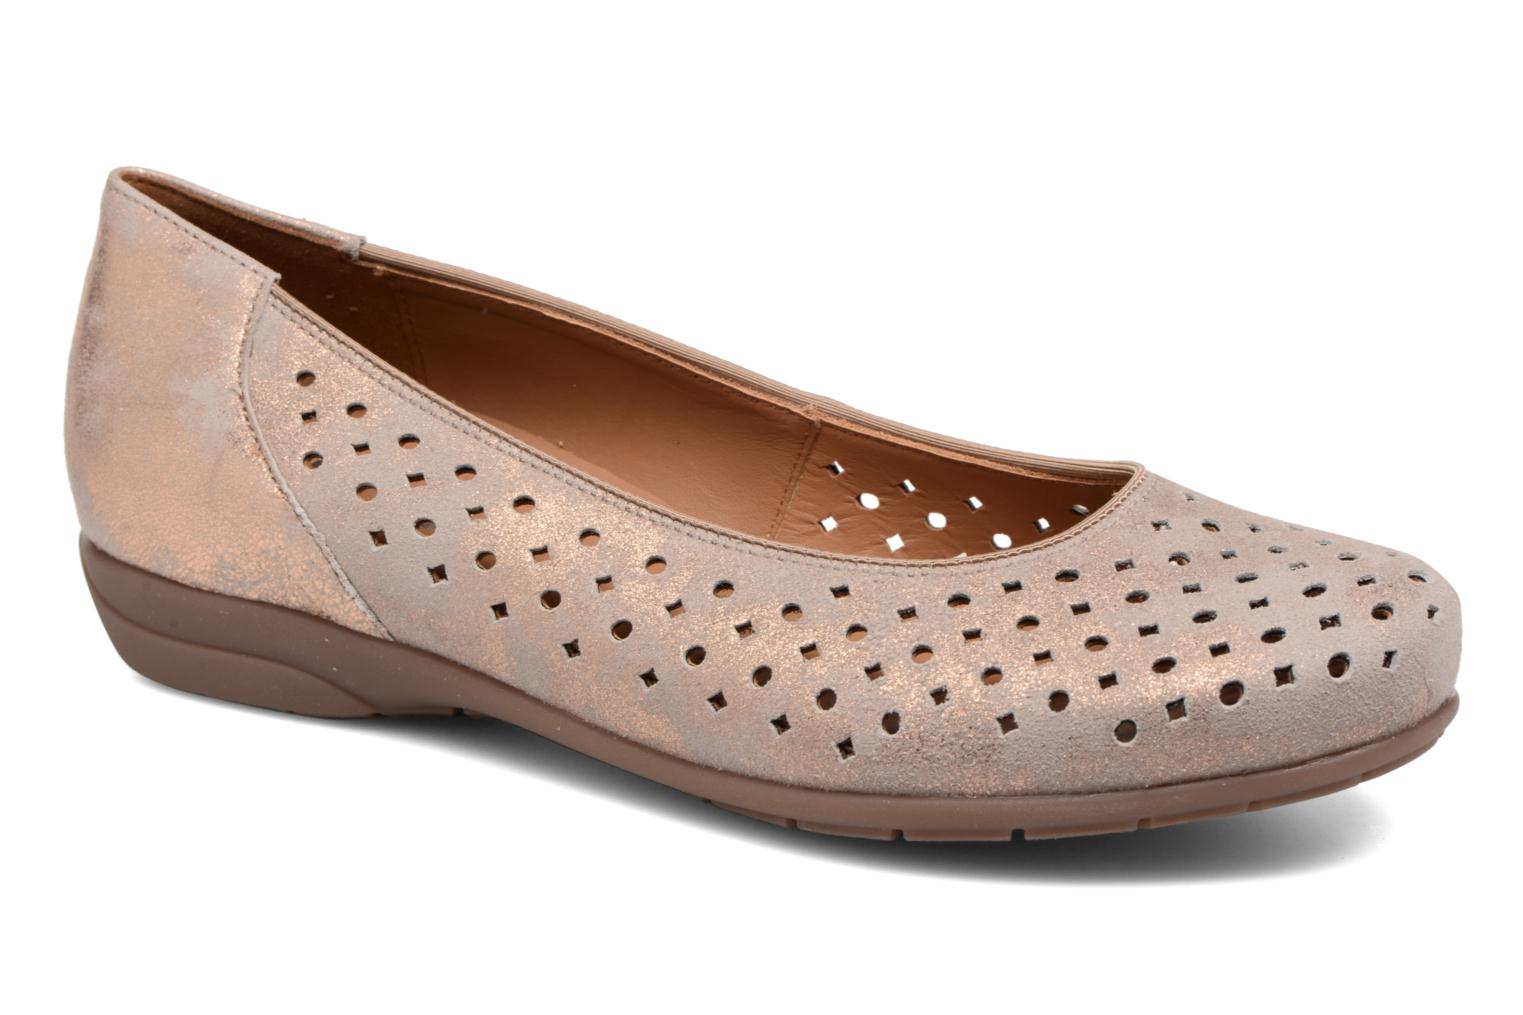 Marques Chaussure femme Ara femme Stanford 33367 Rose gold